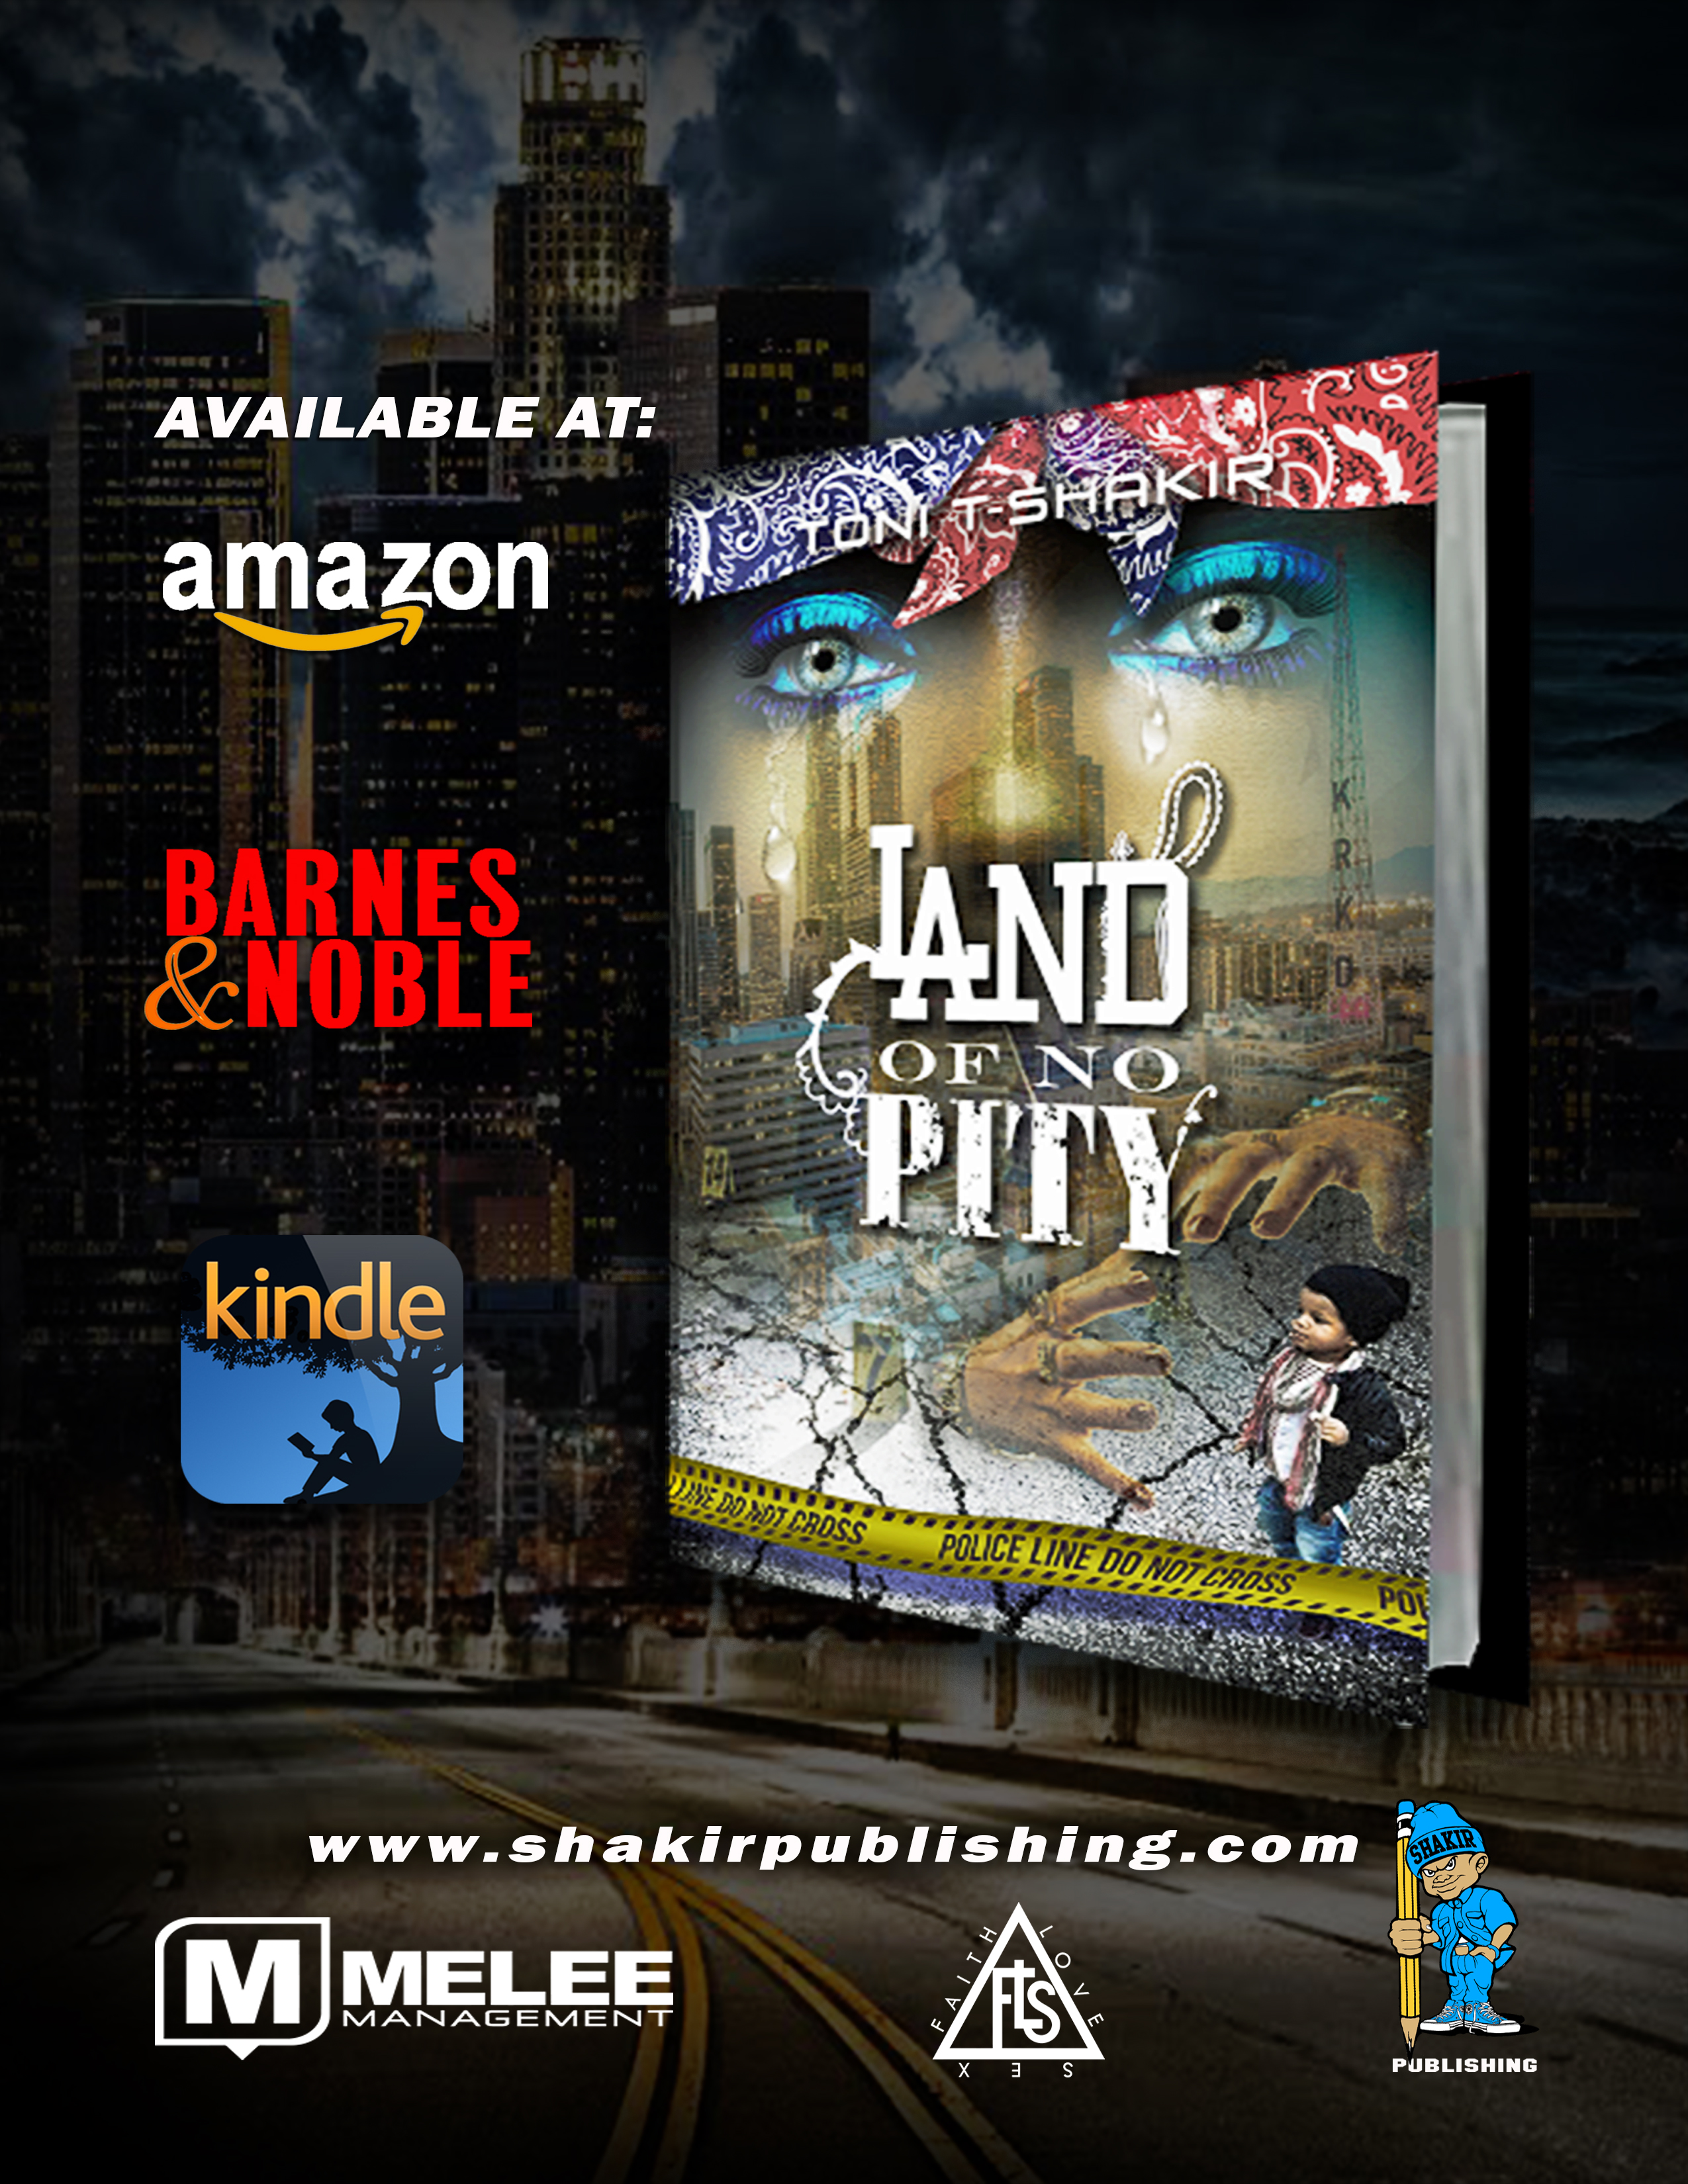 """Toni-T Shakir Delivers the Ultimate Street Tale w/ """"Land of No Pity"""" + Exclusive Q&A"""